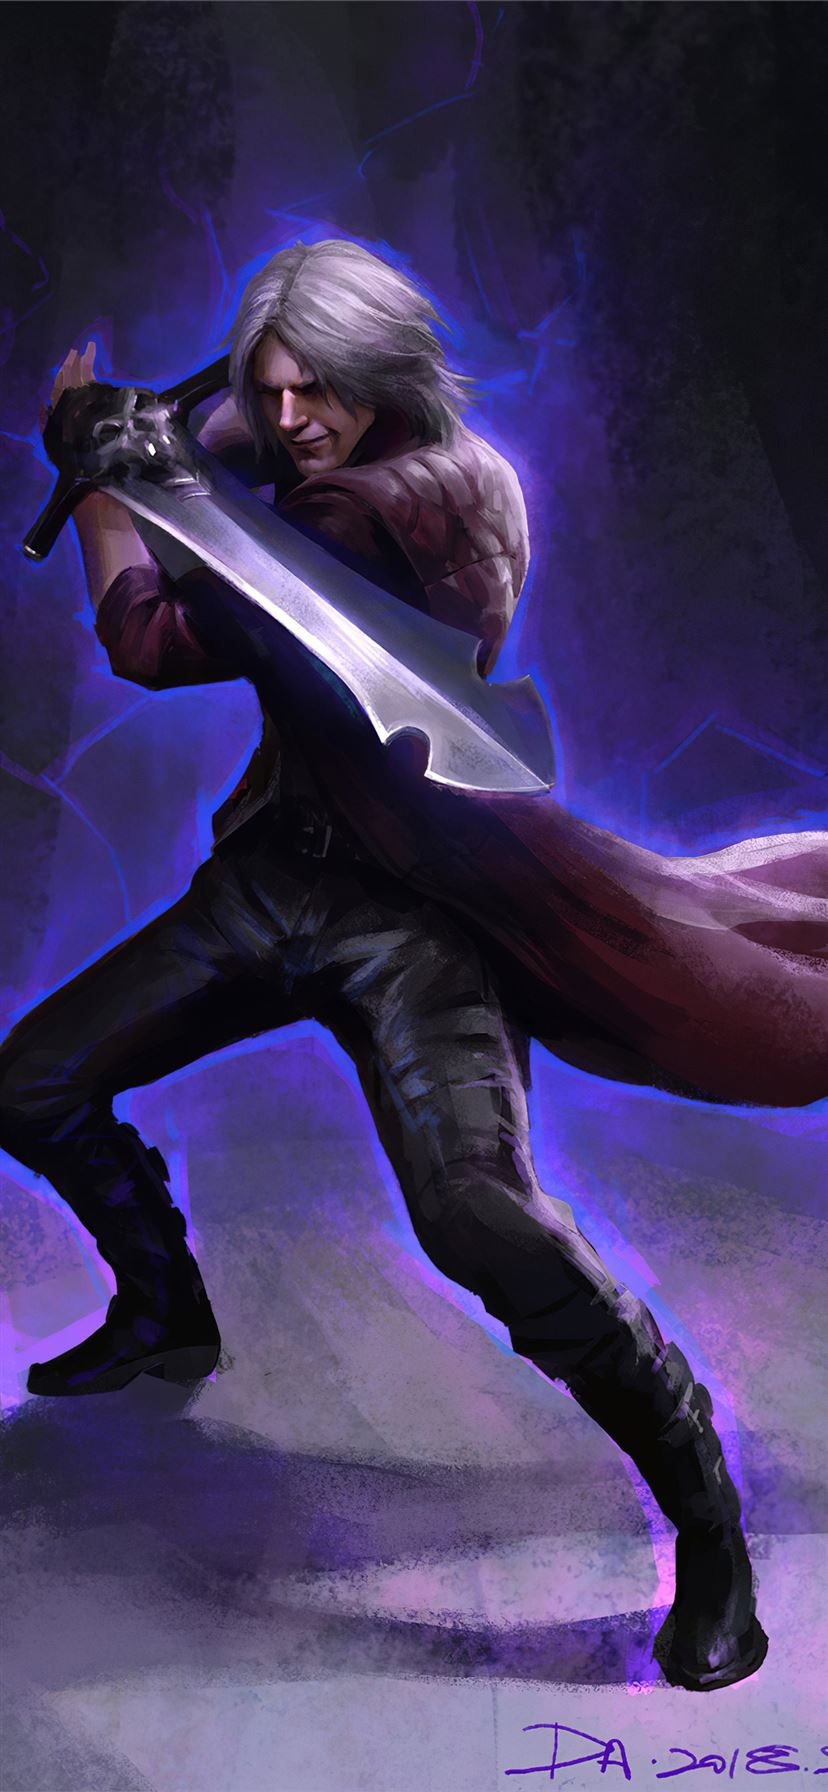 Dante Devil May Cry 5 4k Iphone 11 Wallpapers Free Download